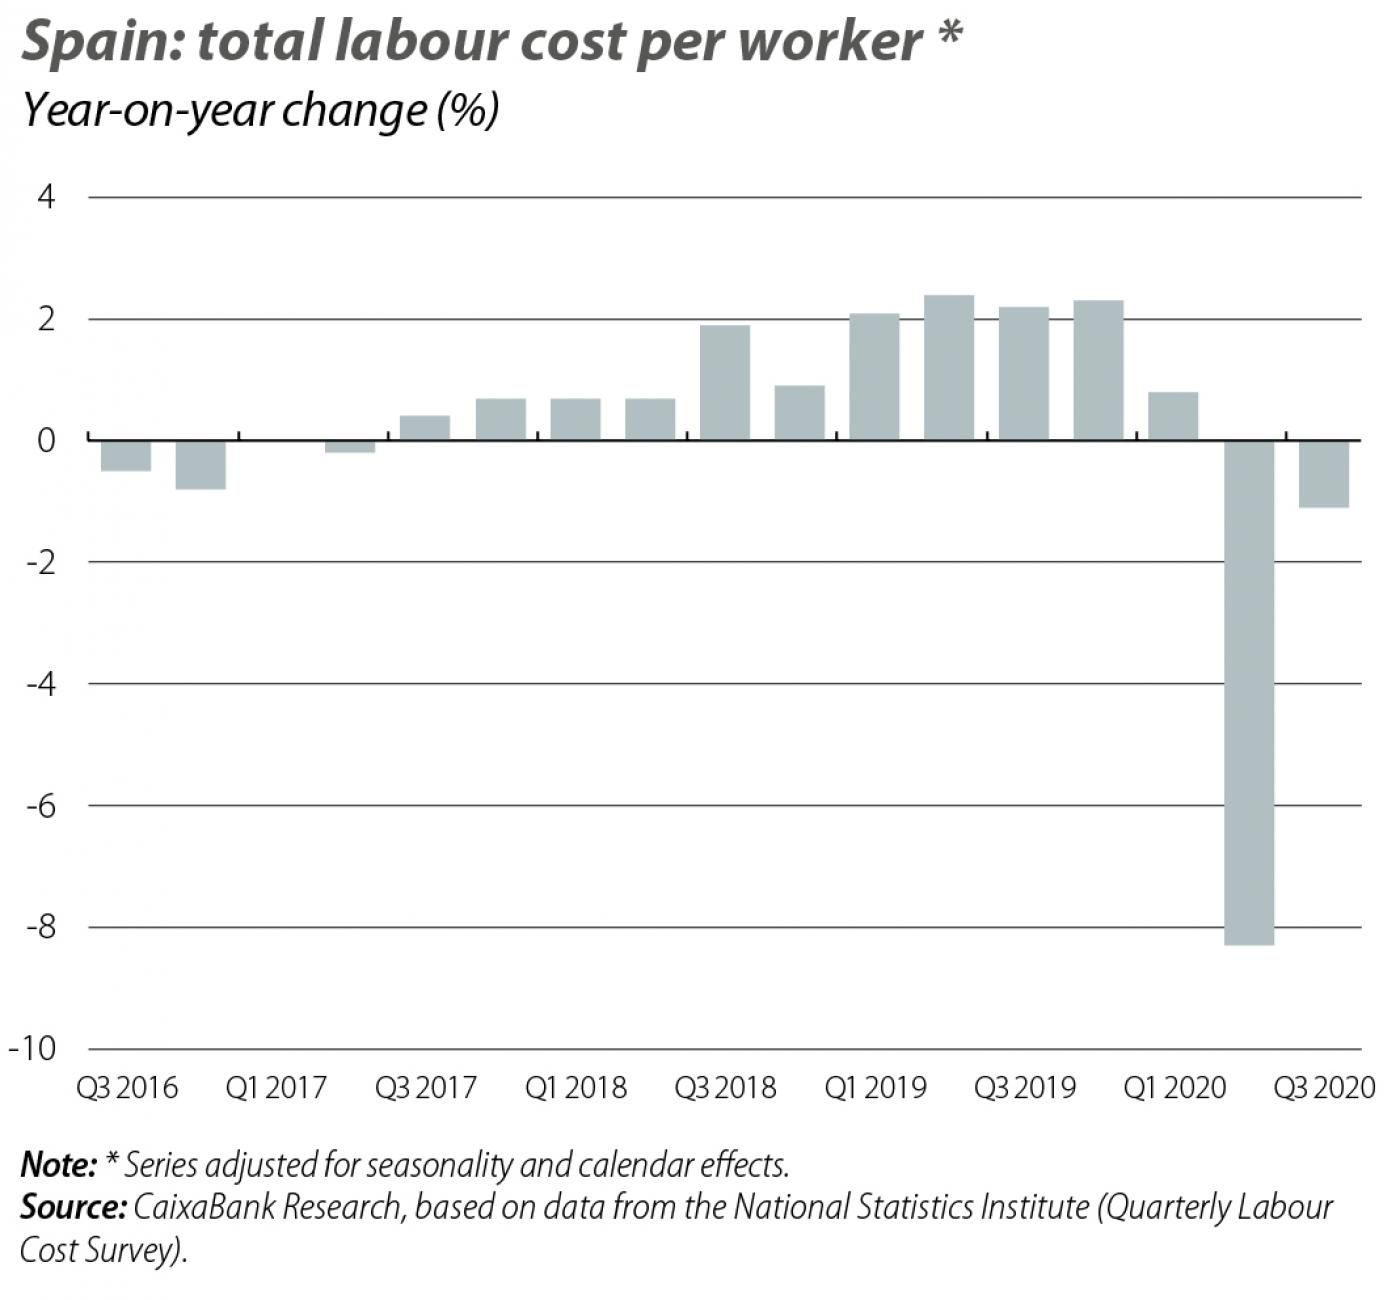 Spain: total labour cost per worker